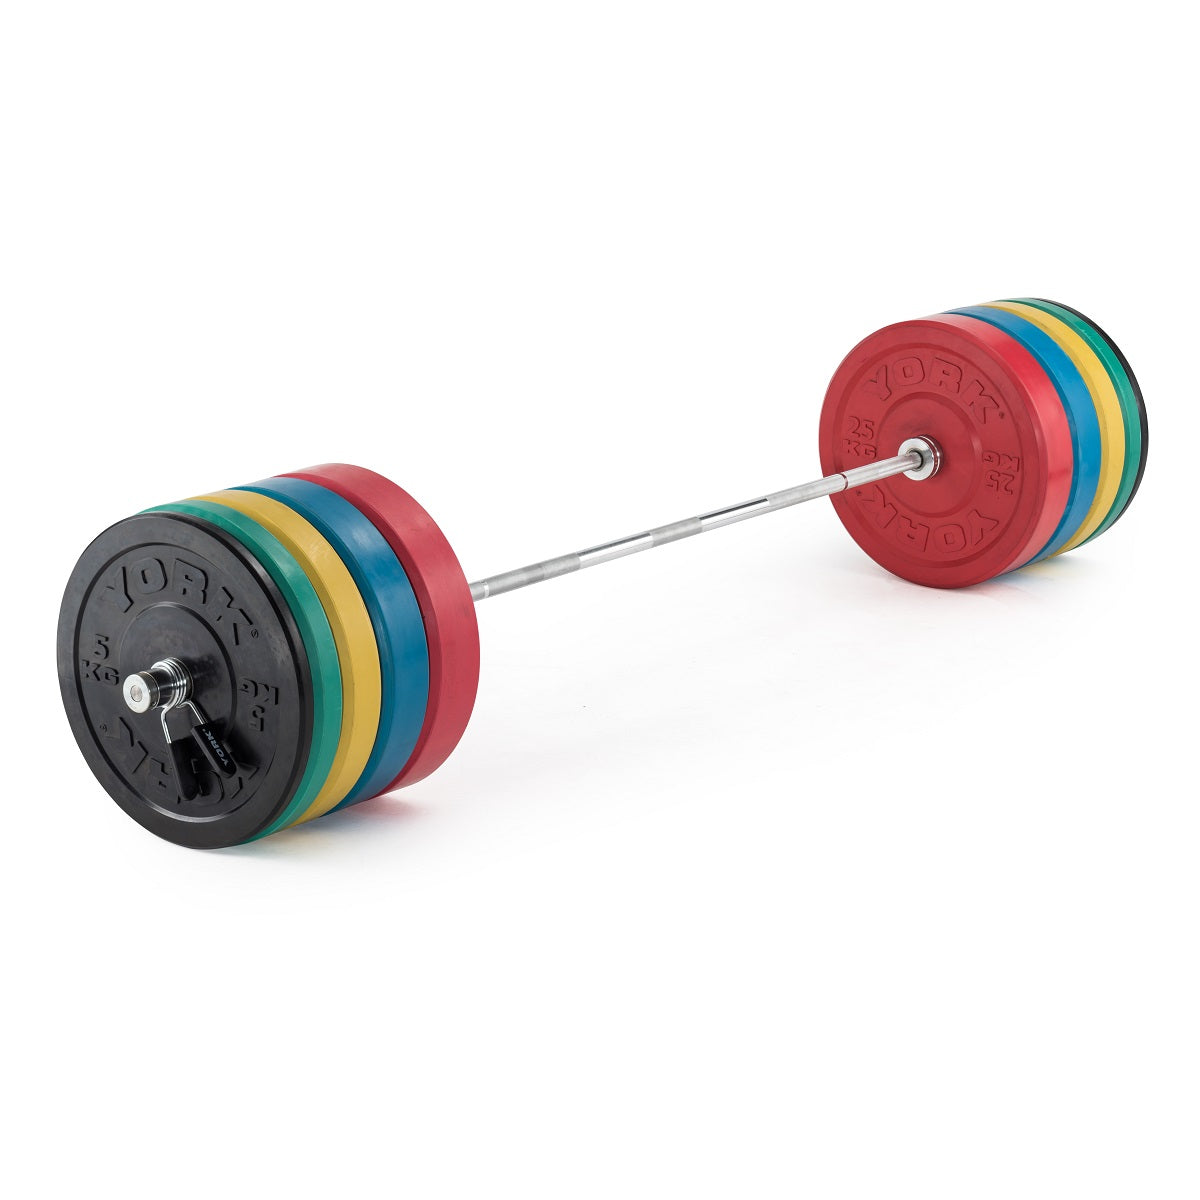 Coloured olympic solid rubber bumper plates york fitness york